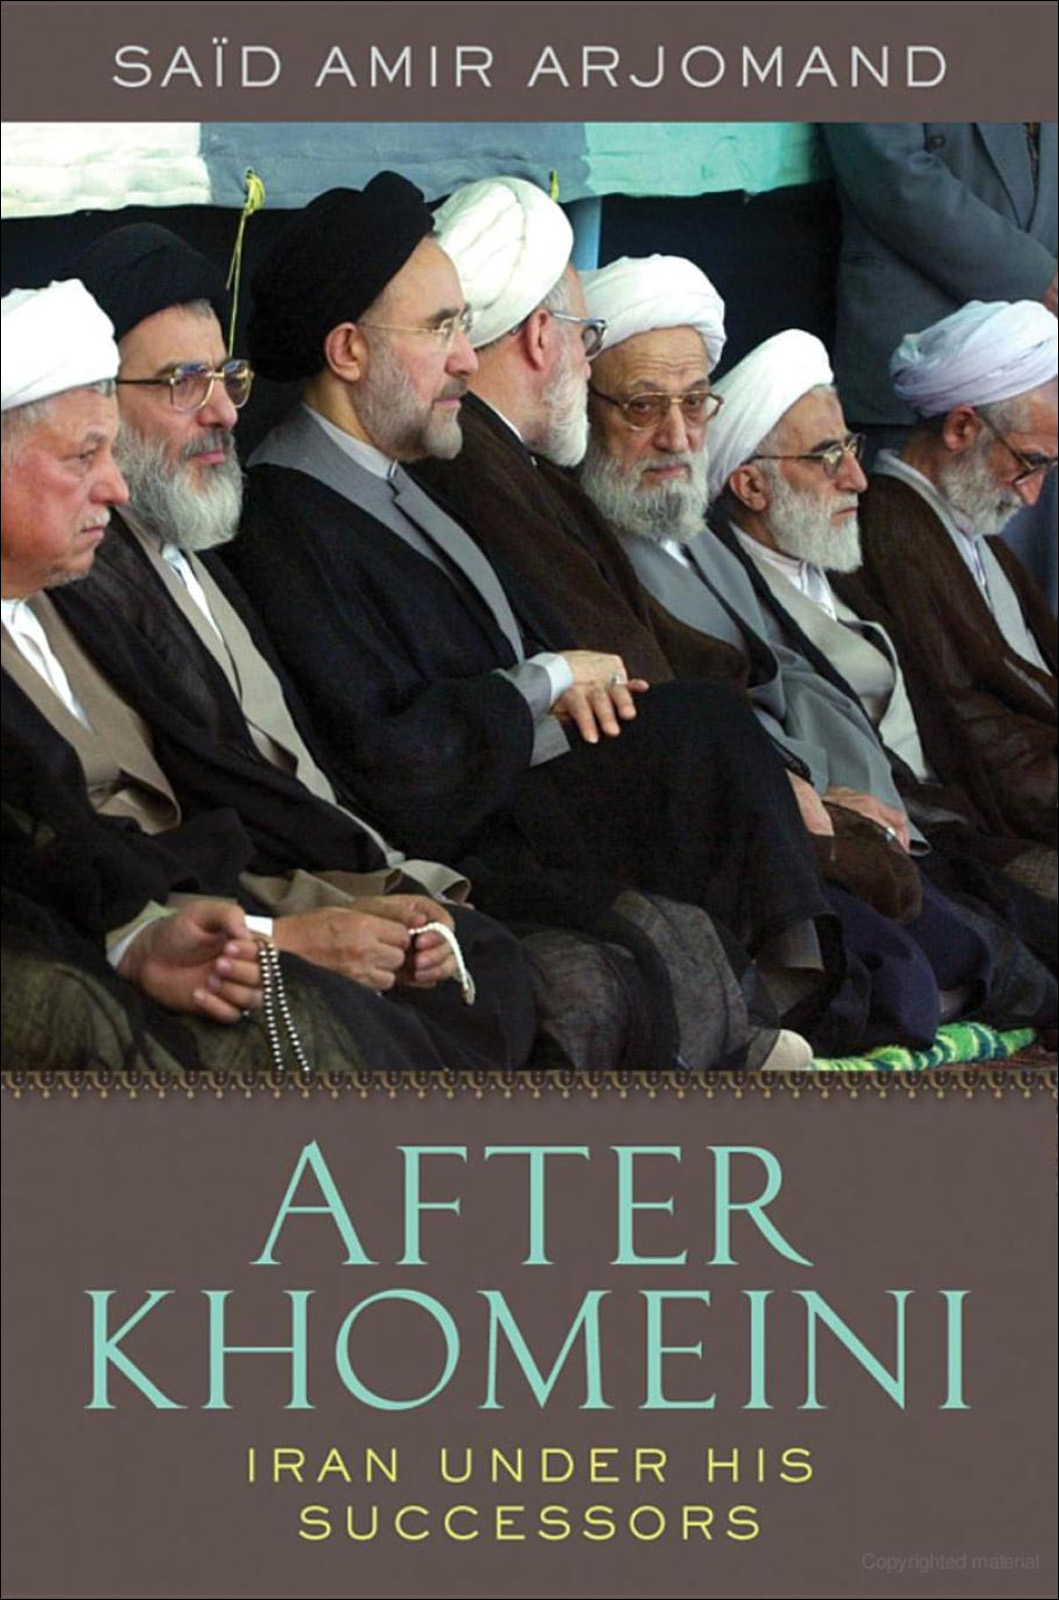 After Khomeini:Iran Under His Successors